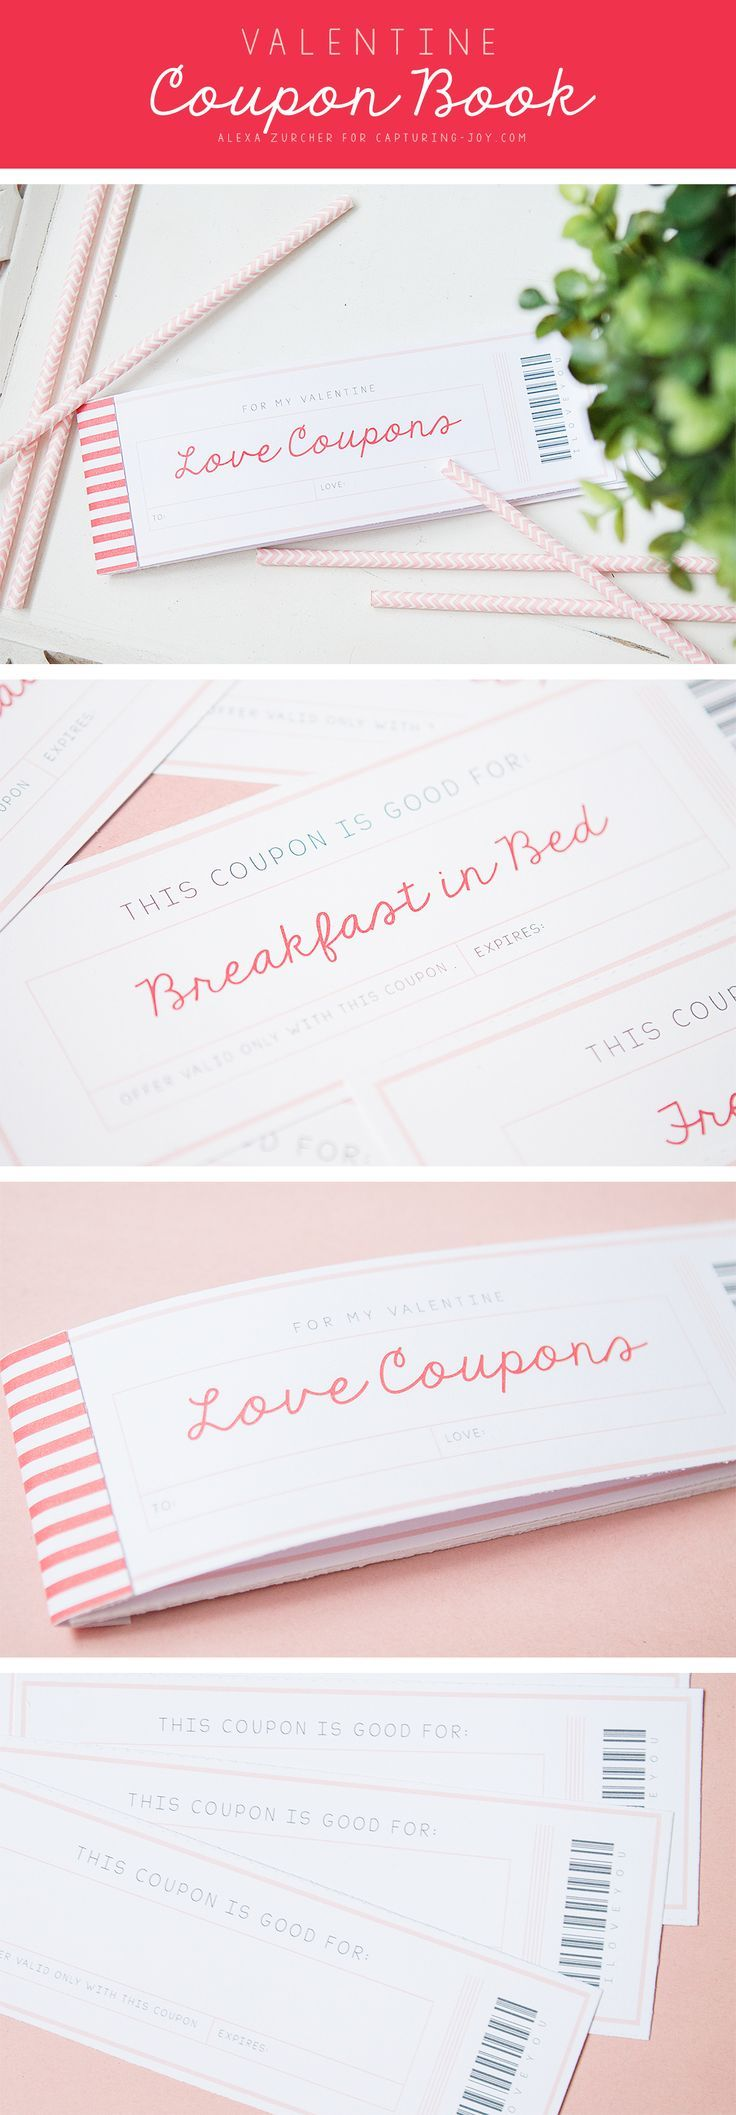 wedding stationery free printable%0A Valentine Coupon Book Printable